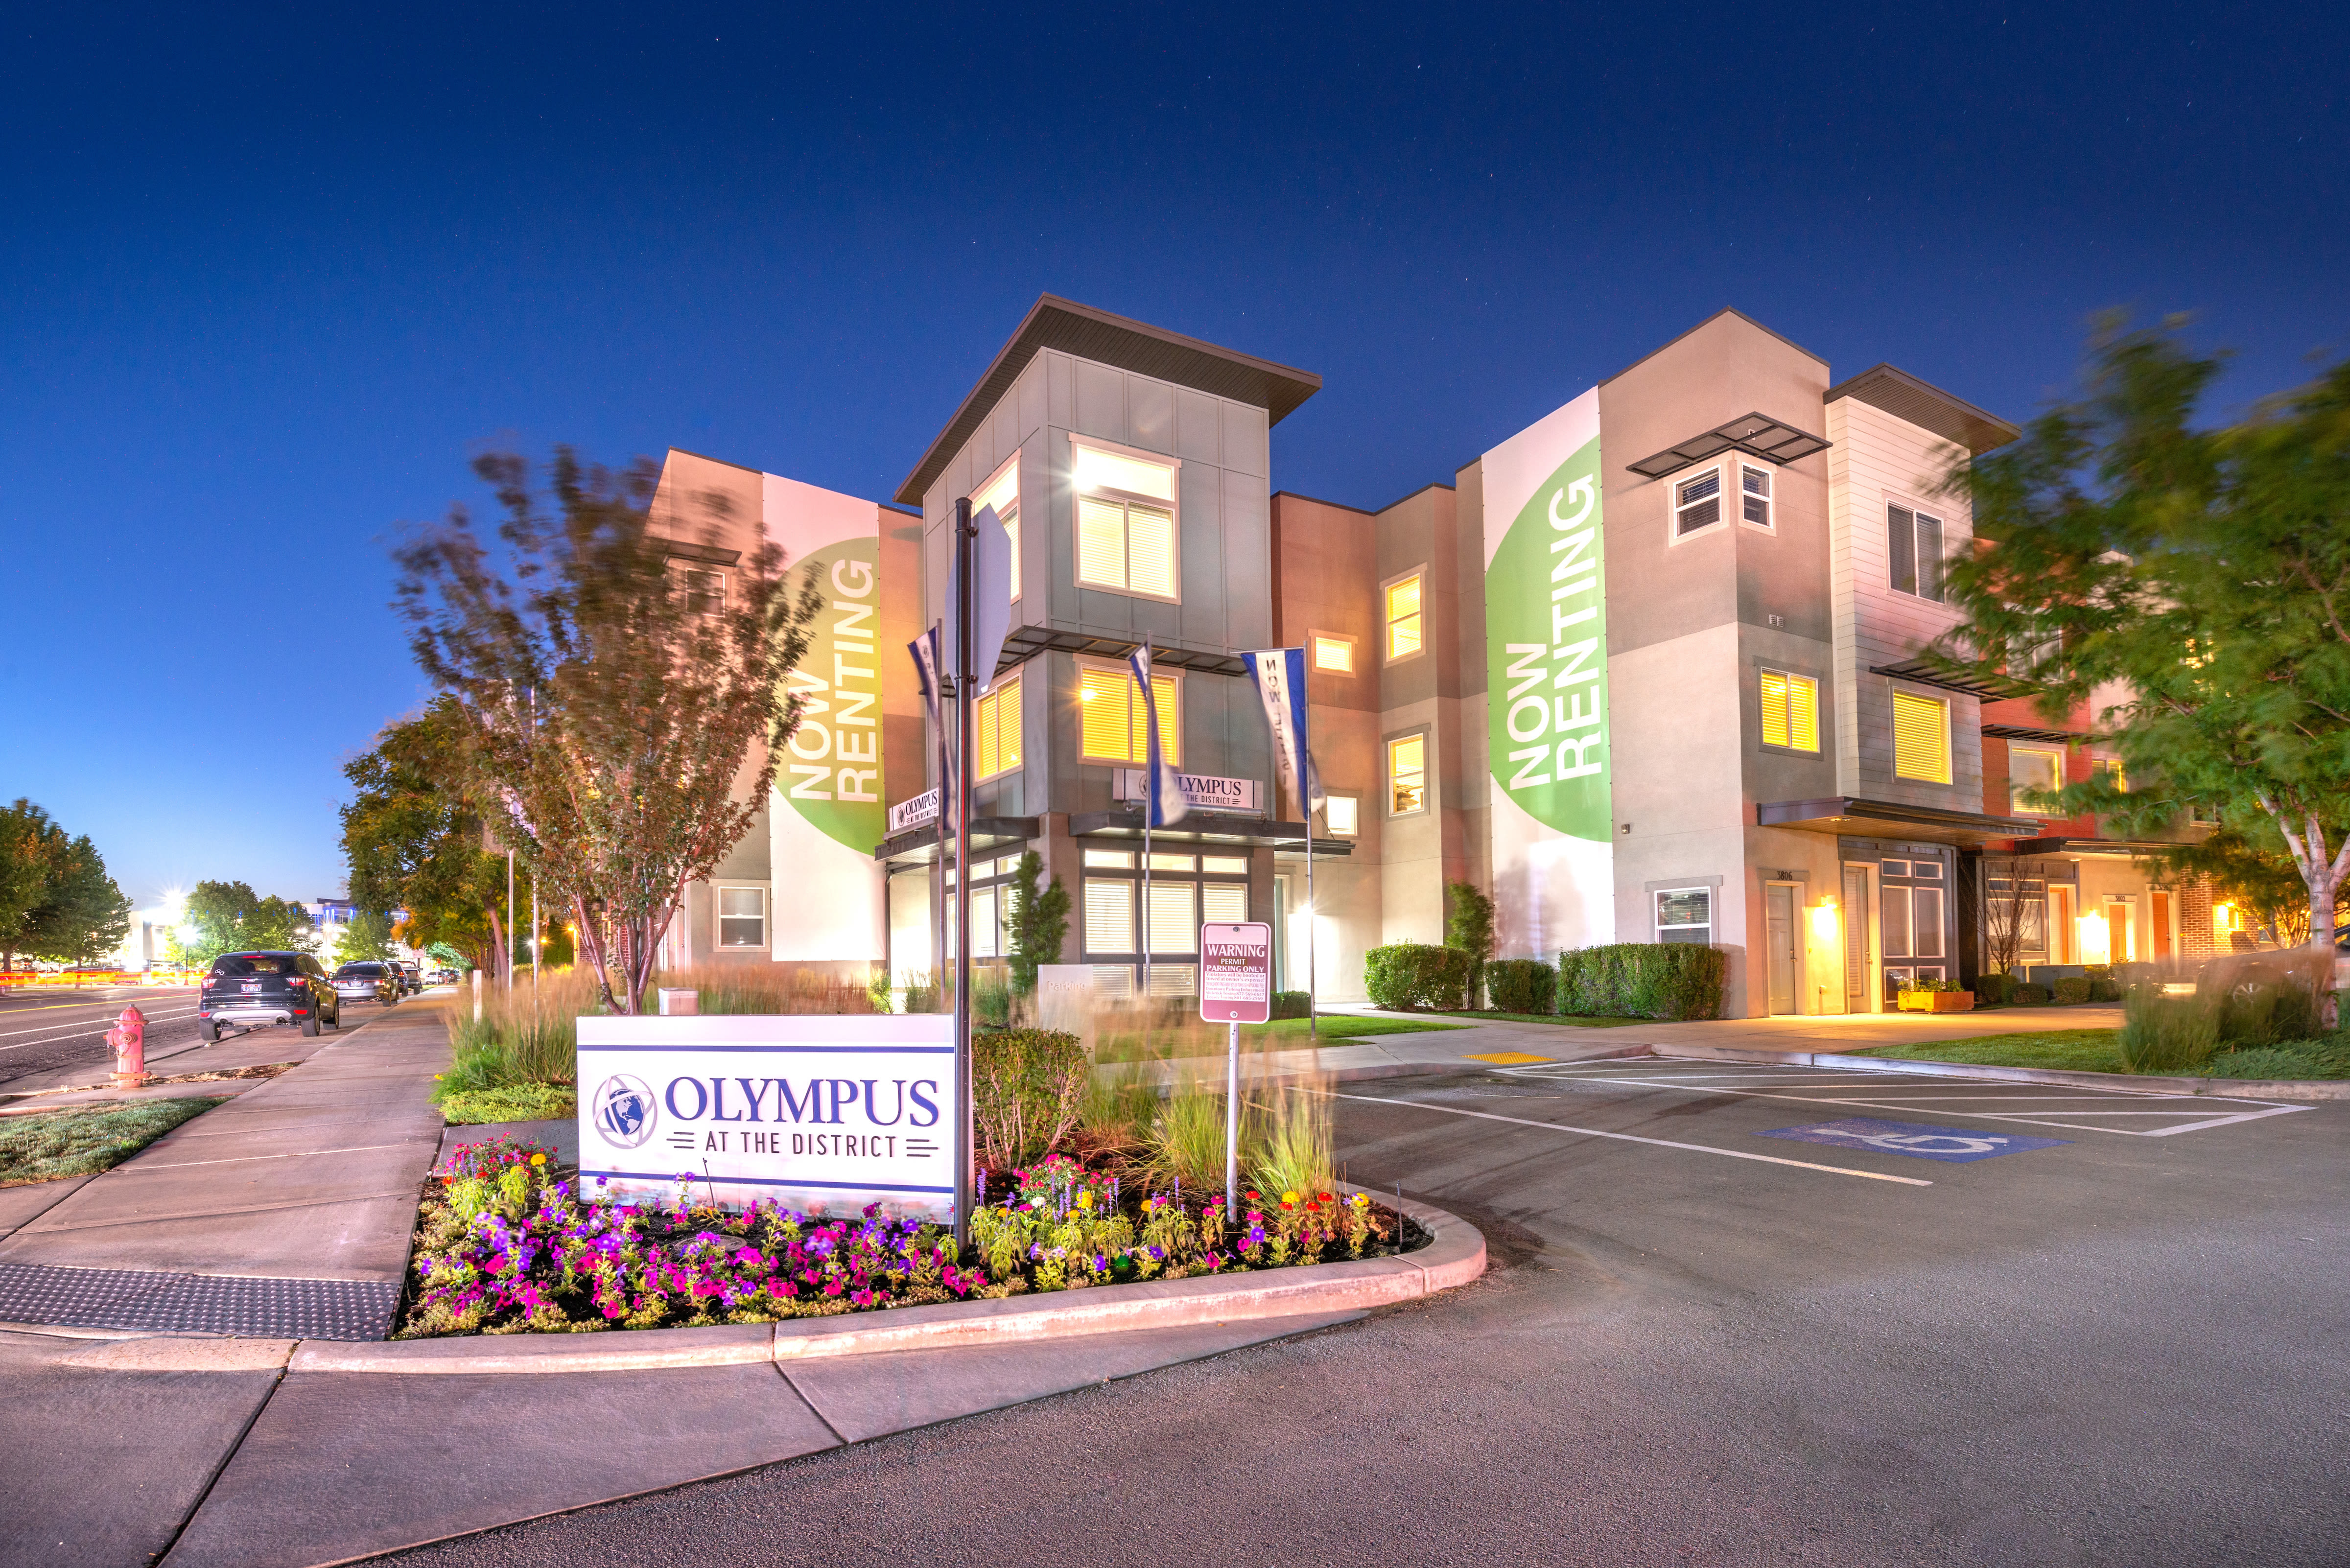 Exterior of buildings at Olympus at the District in South Jordan, Utah lit up in early evening.